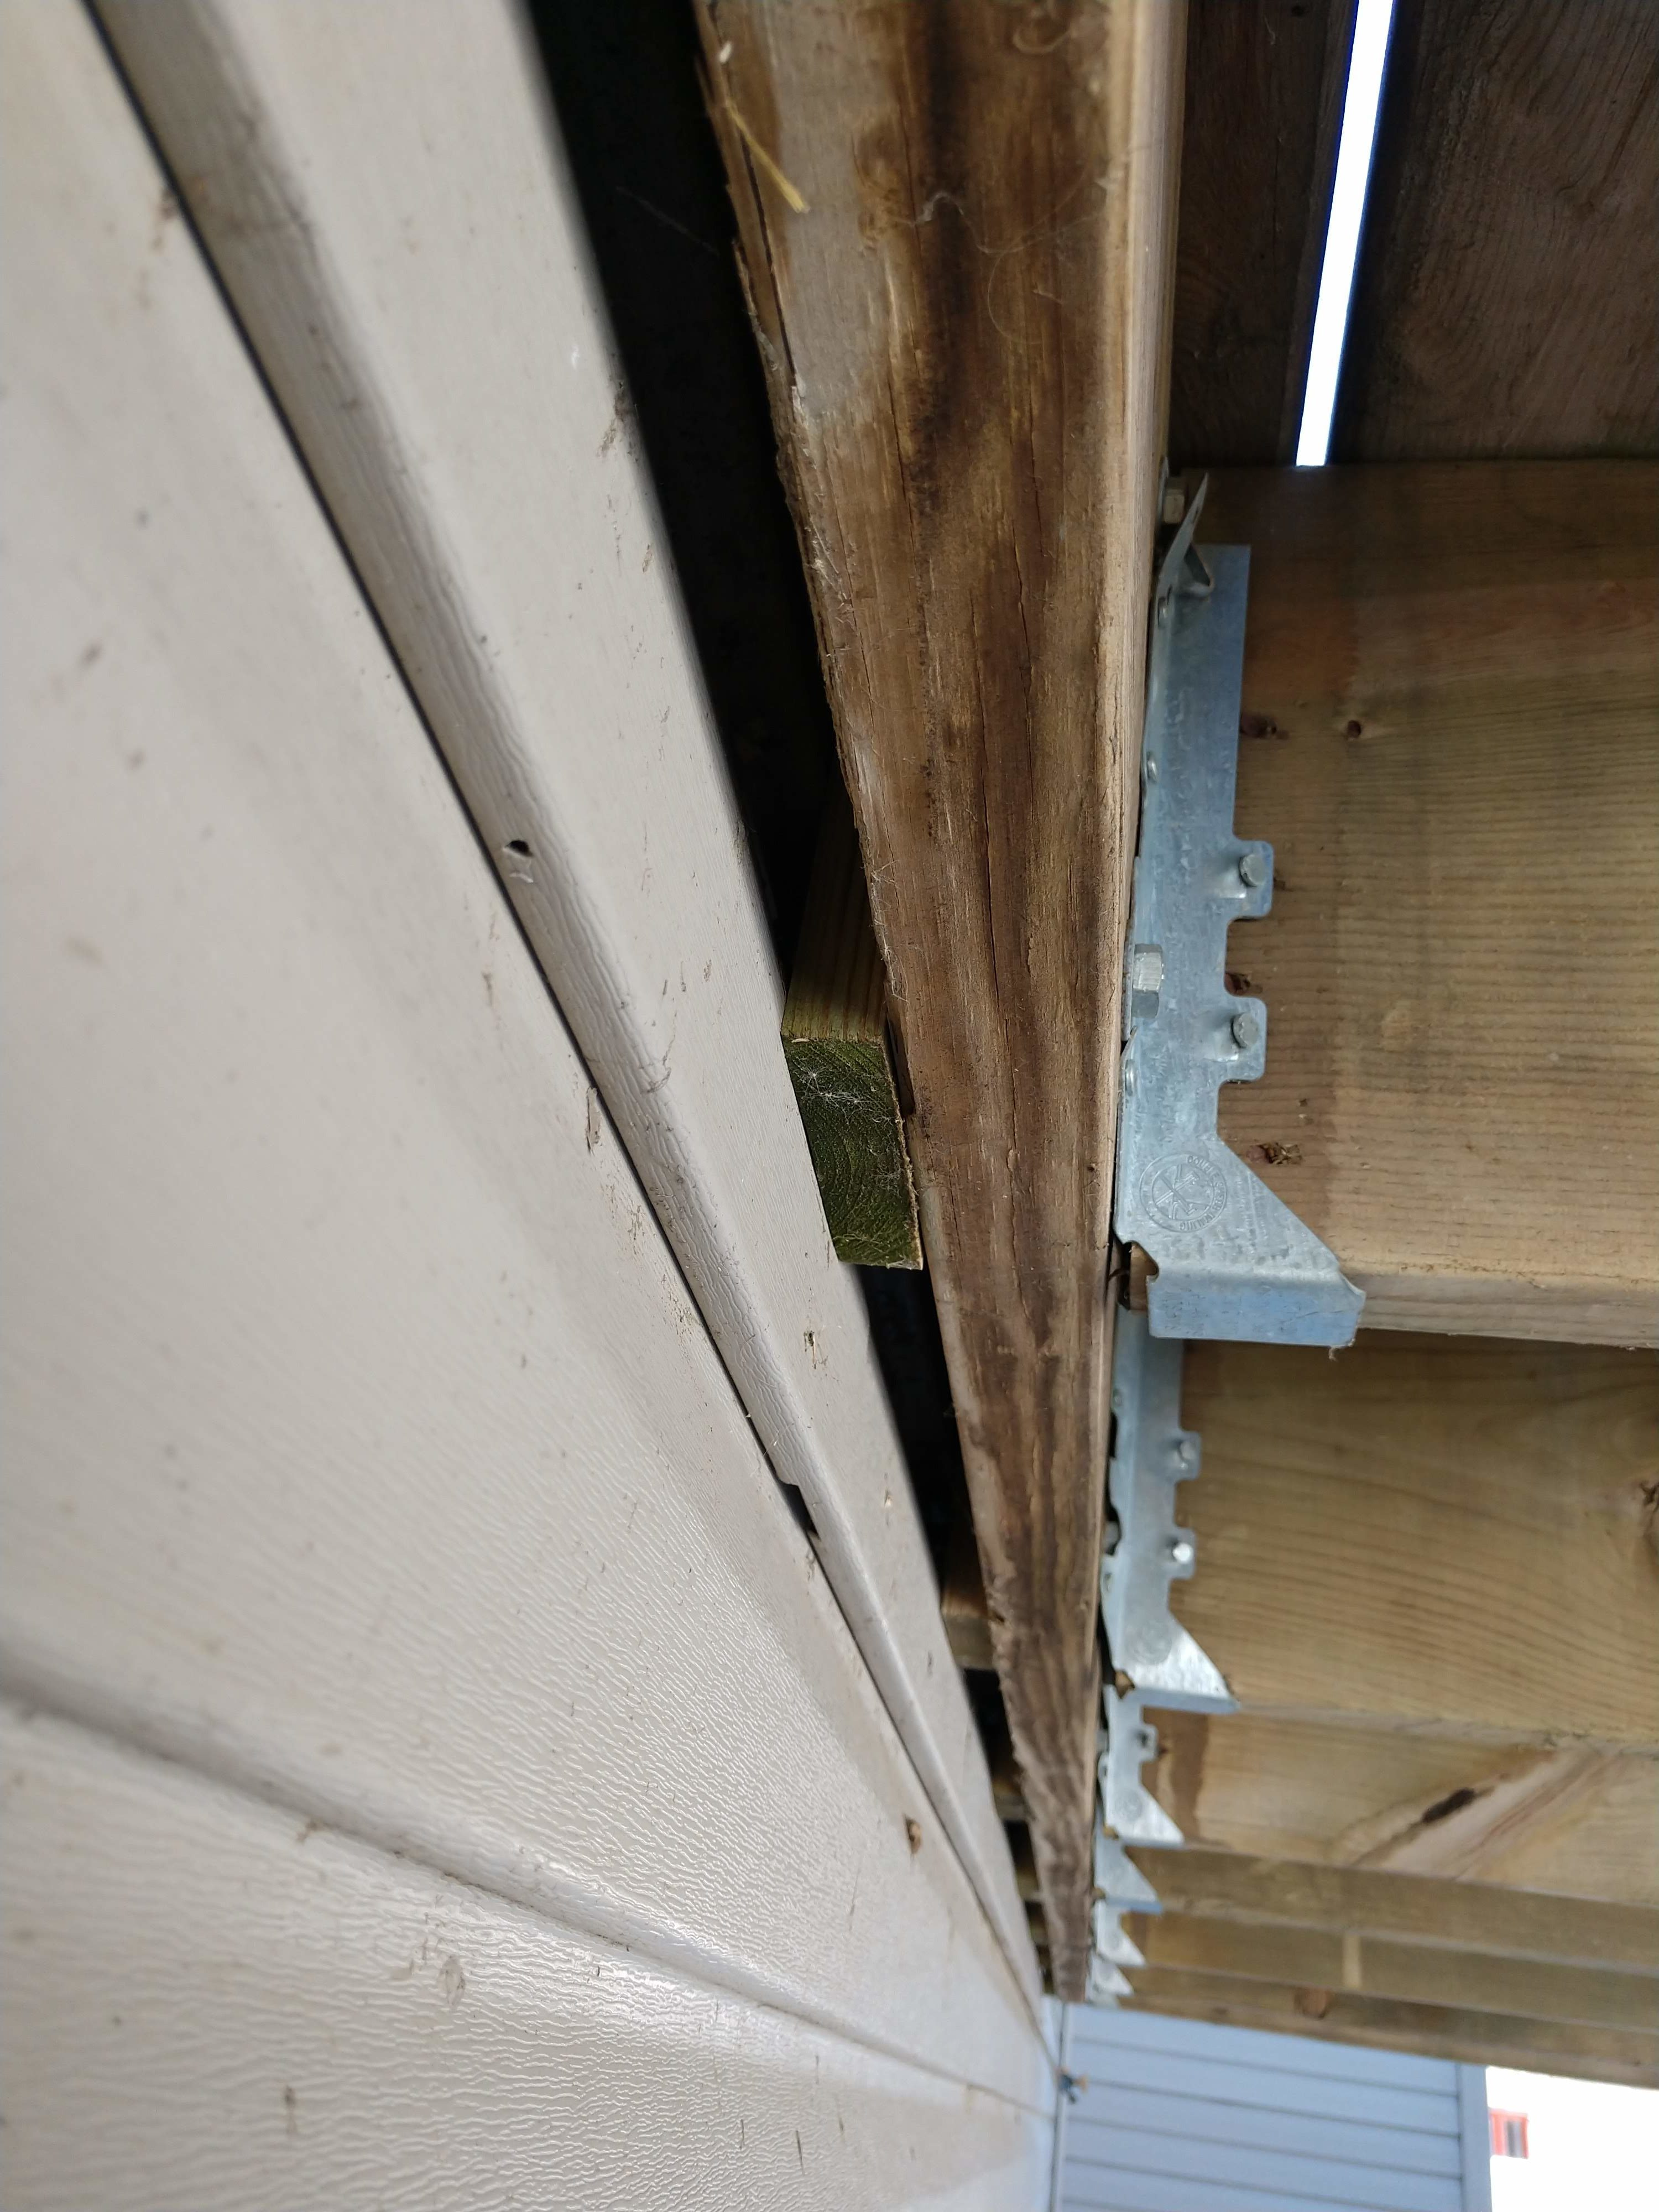 No ledger board. Deck is screwed to the siding using lag bolts.